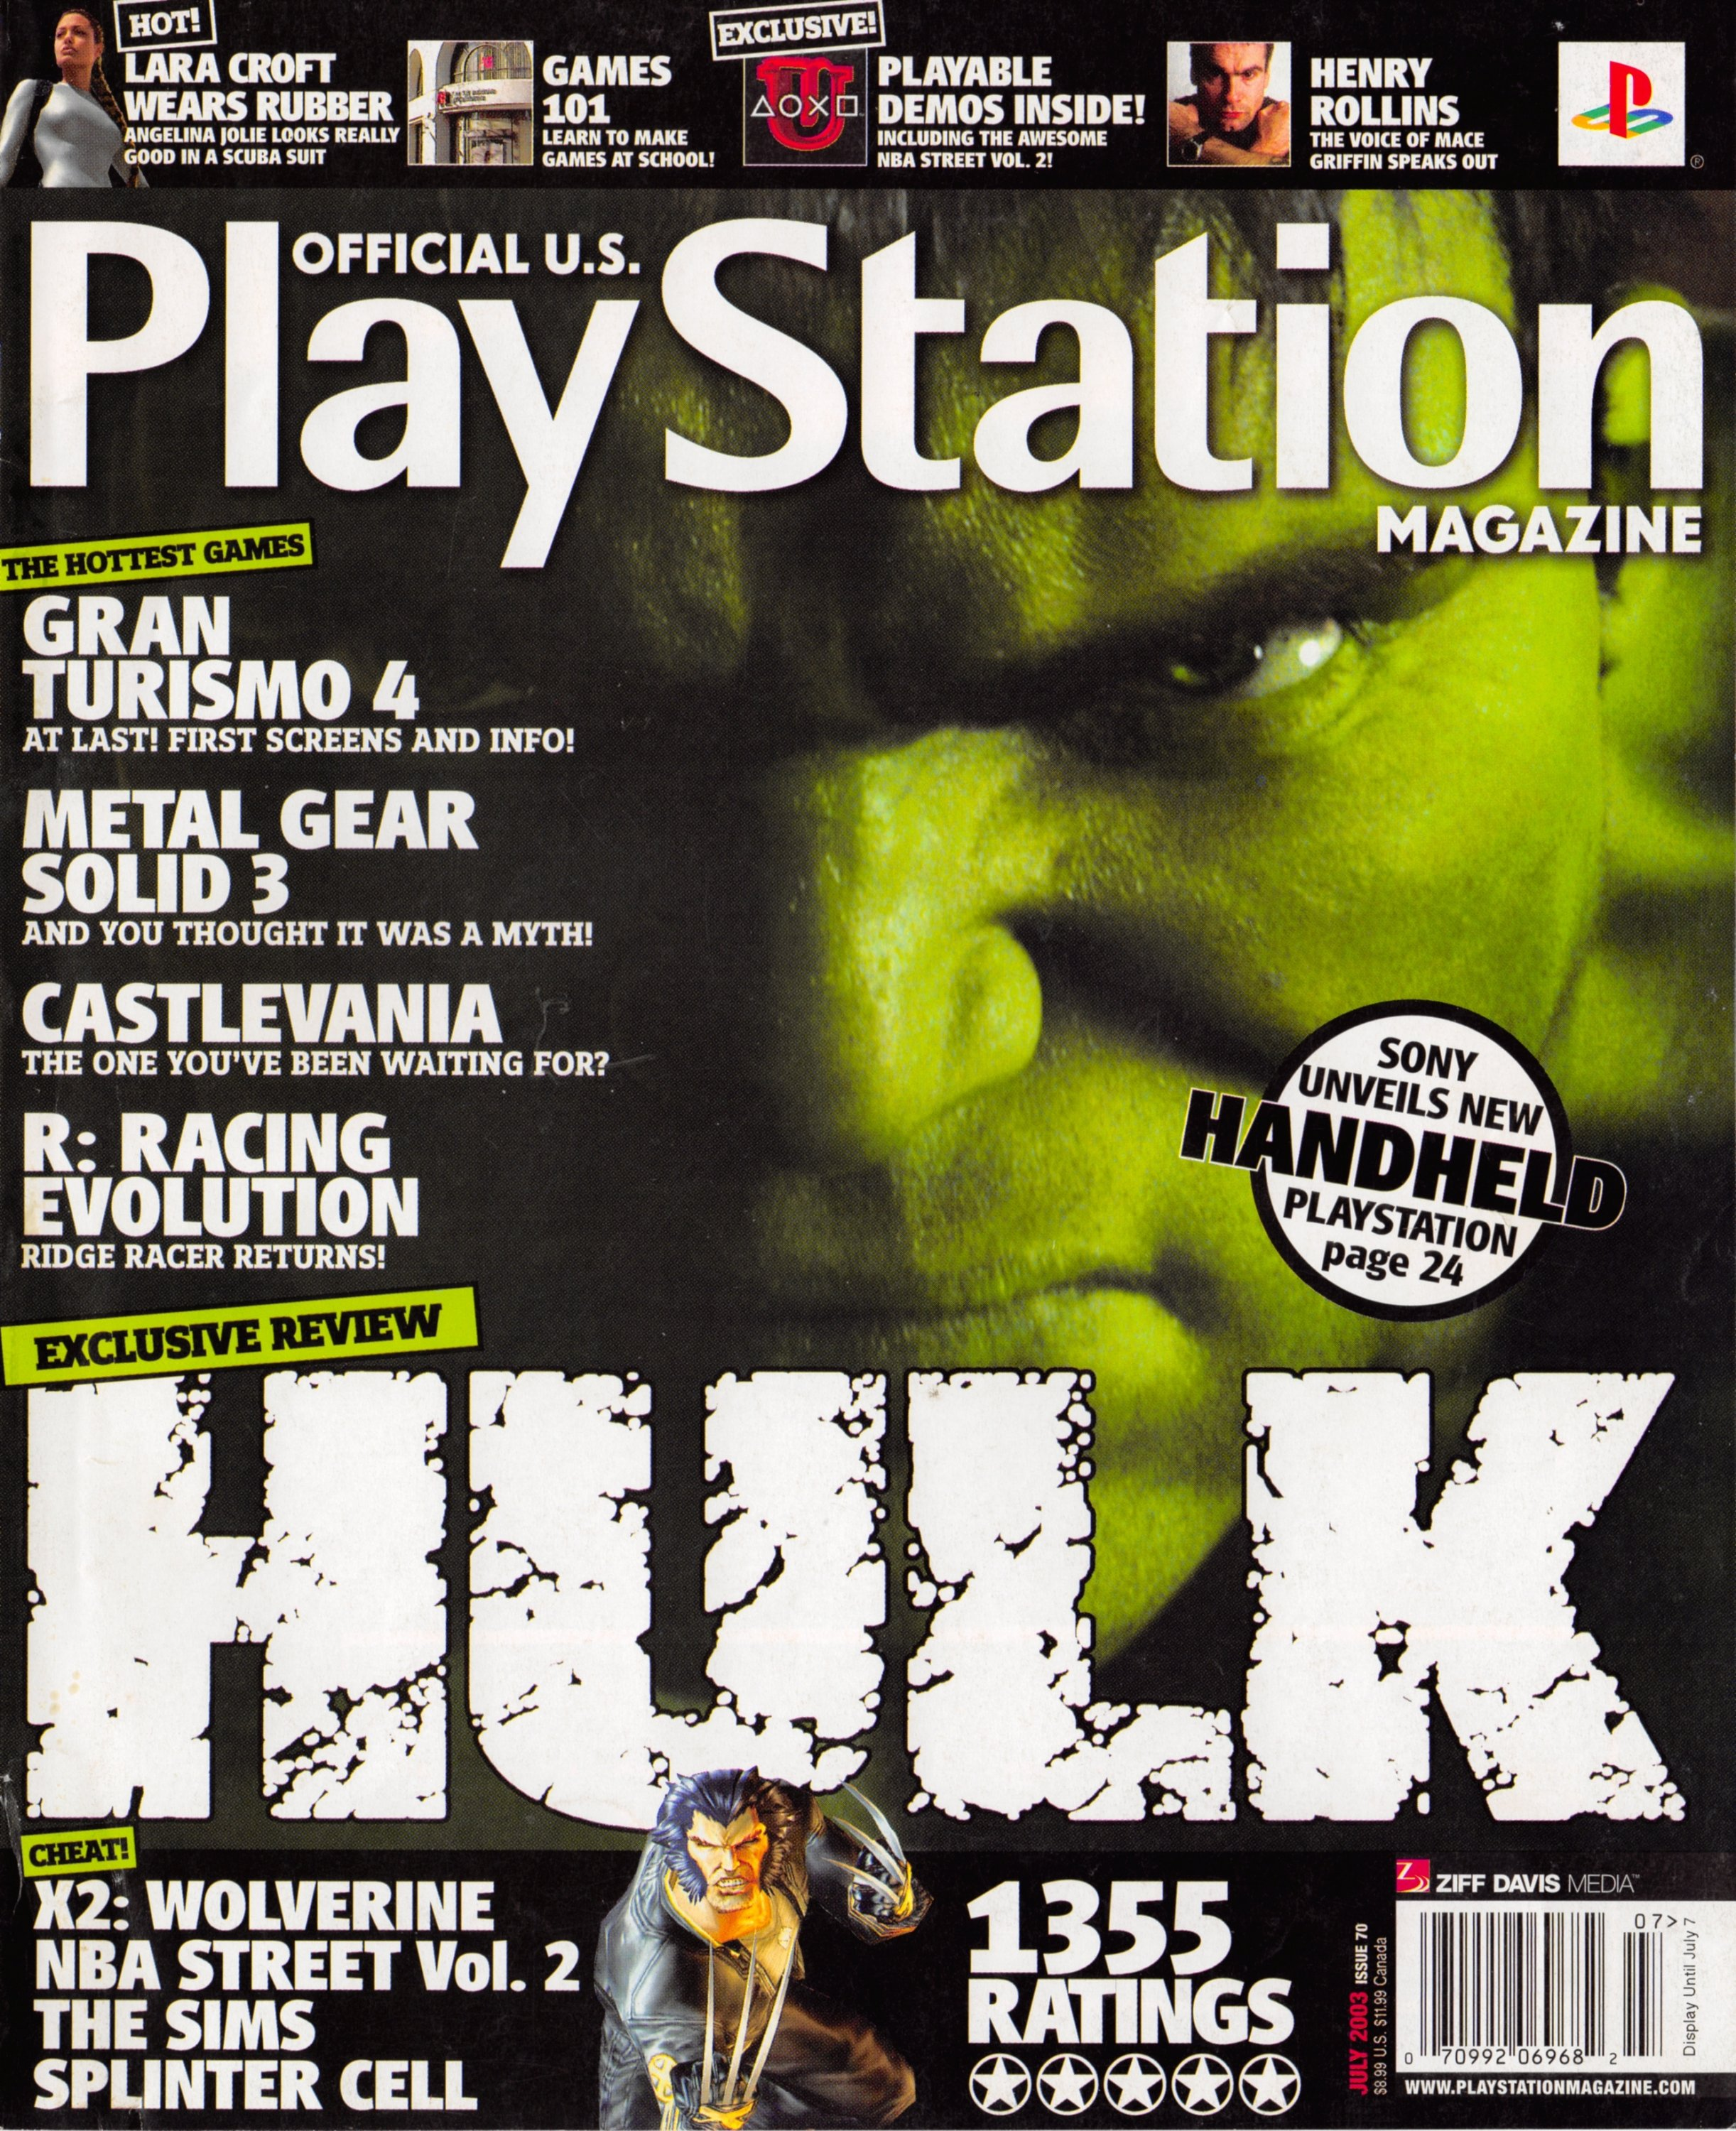 Official U.S. Playstation Magazine Issue 070 (July 2003)